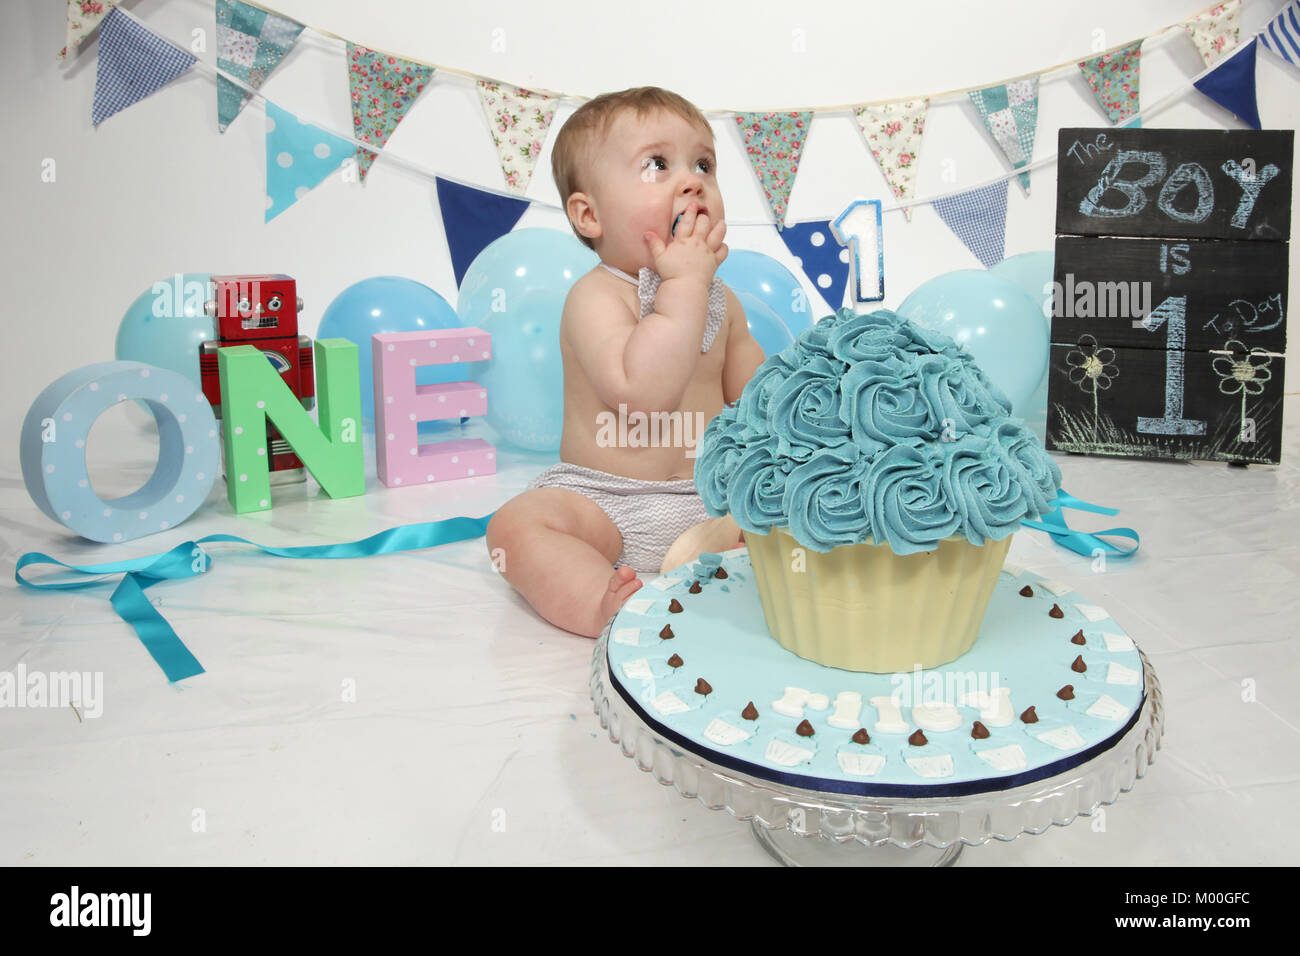 Incredible 1 Year Old Boy Birthday Party Cake Smash Fun Food Stock Photo Personalised Birthday Cards Cominlily Jamesorg